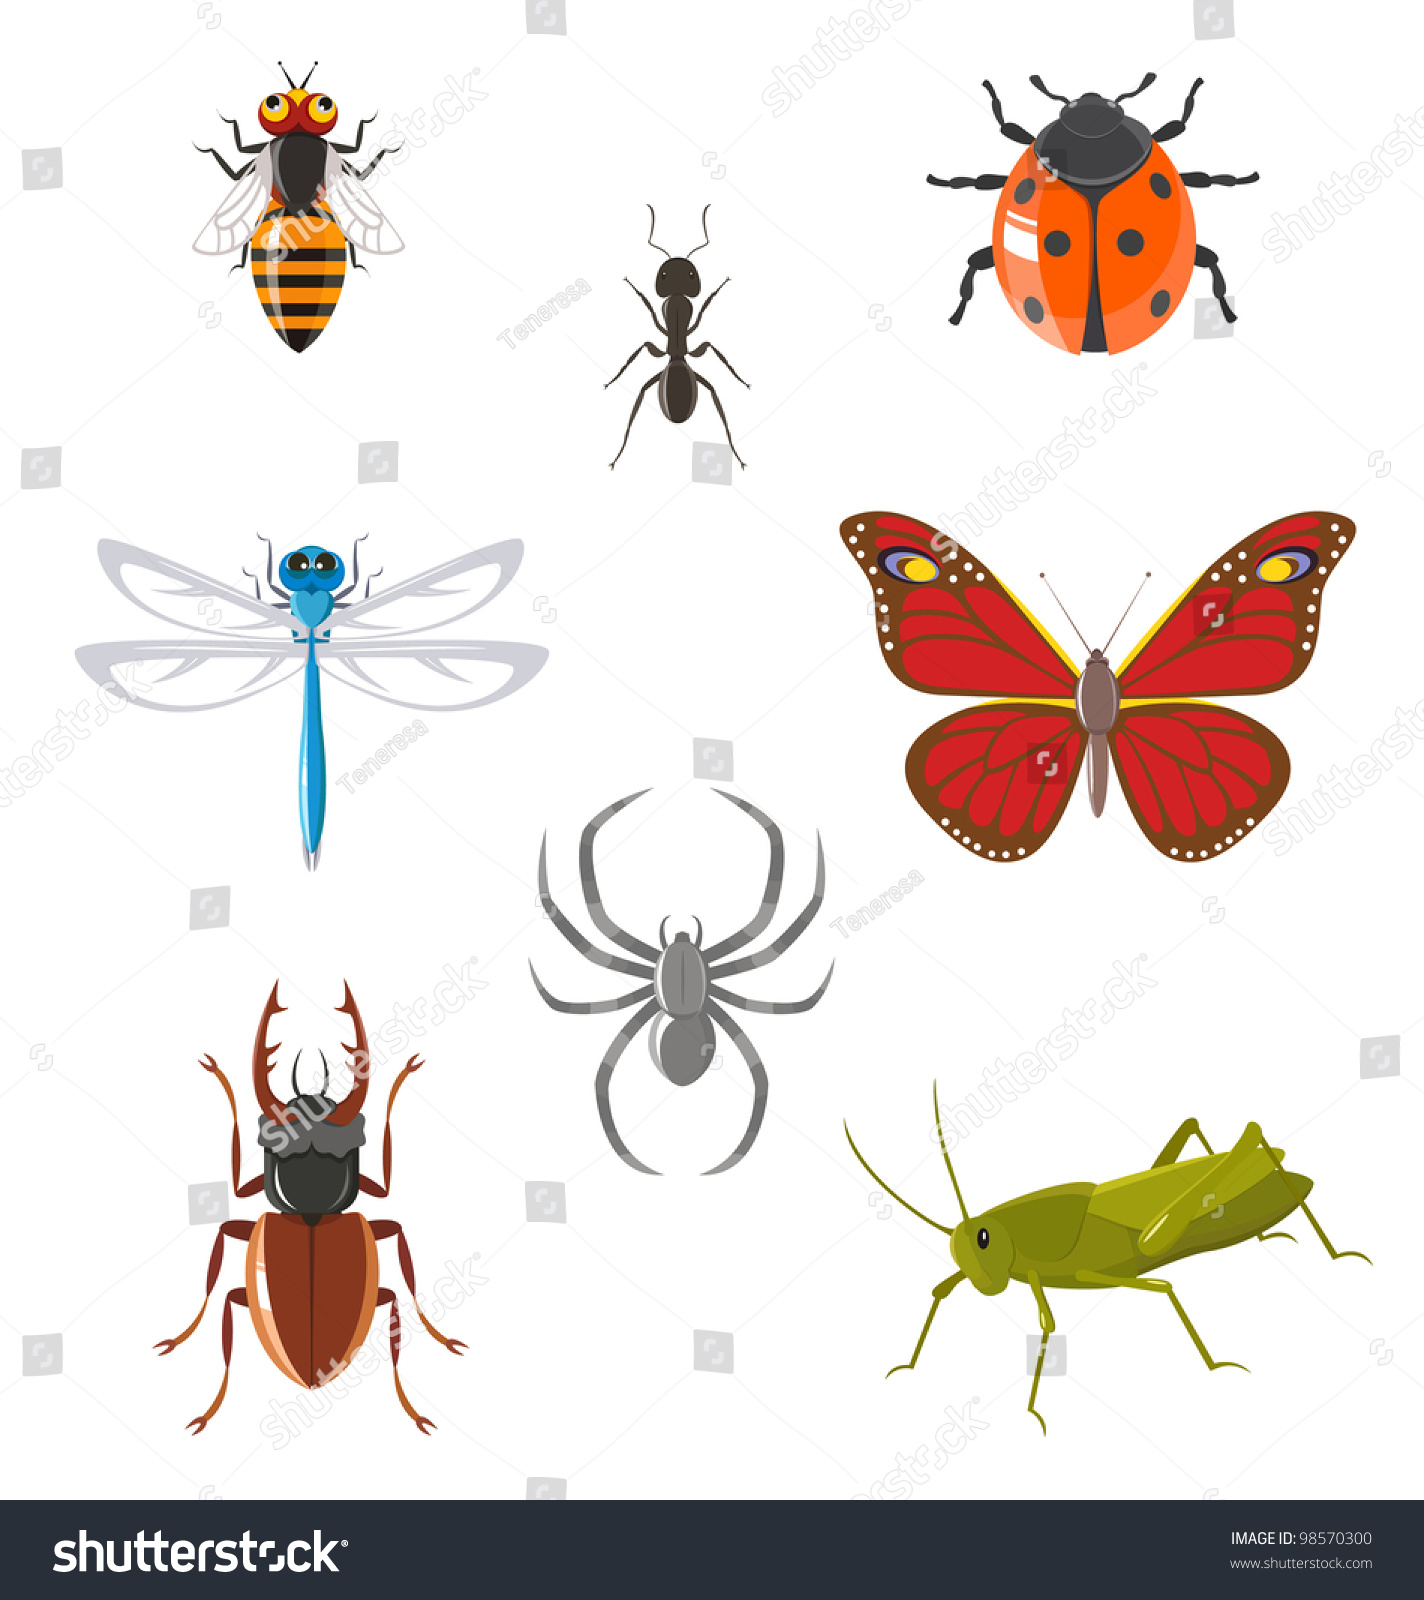 Worksheet Butterfly Beetle set various insects such ant butterfly stock vector 98570300 of as beetle dragonfly spider